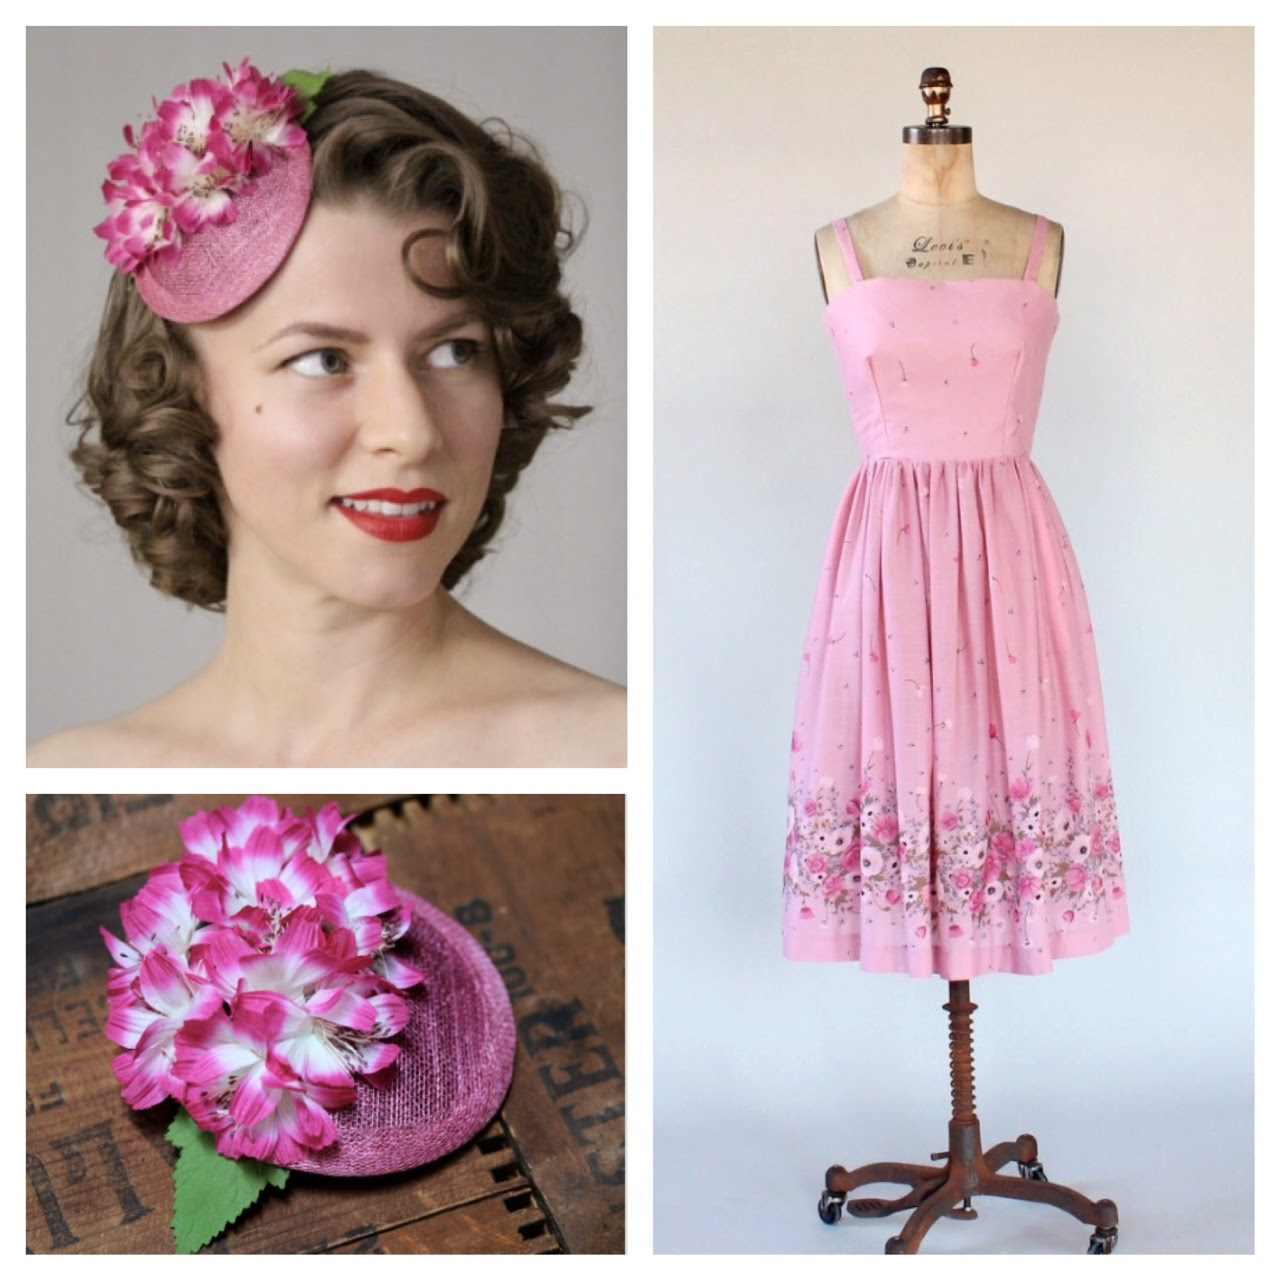 Cosmo Curtsy - 1970s floral with vintage millinery headpiece #vintage #dress #1970s #hair #pink